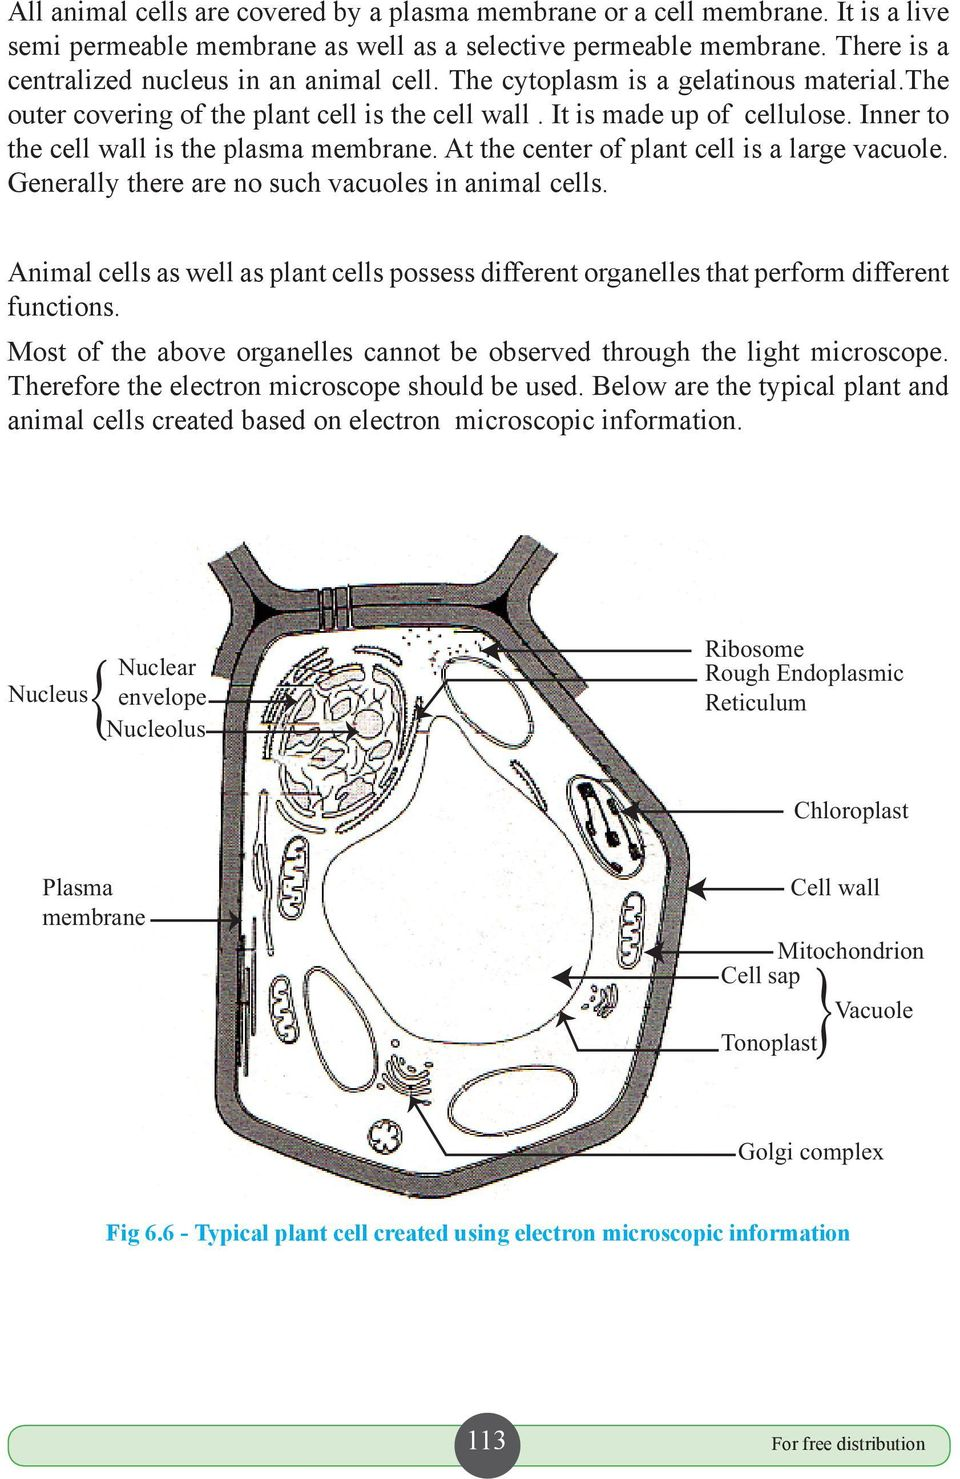 At the center of plant cell is a large vacuole. Generally there are no such vacuoles in animal cells. Animal cells as well as plant cells possess different organelles that perform different functions.